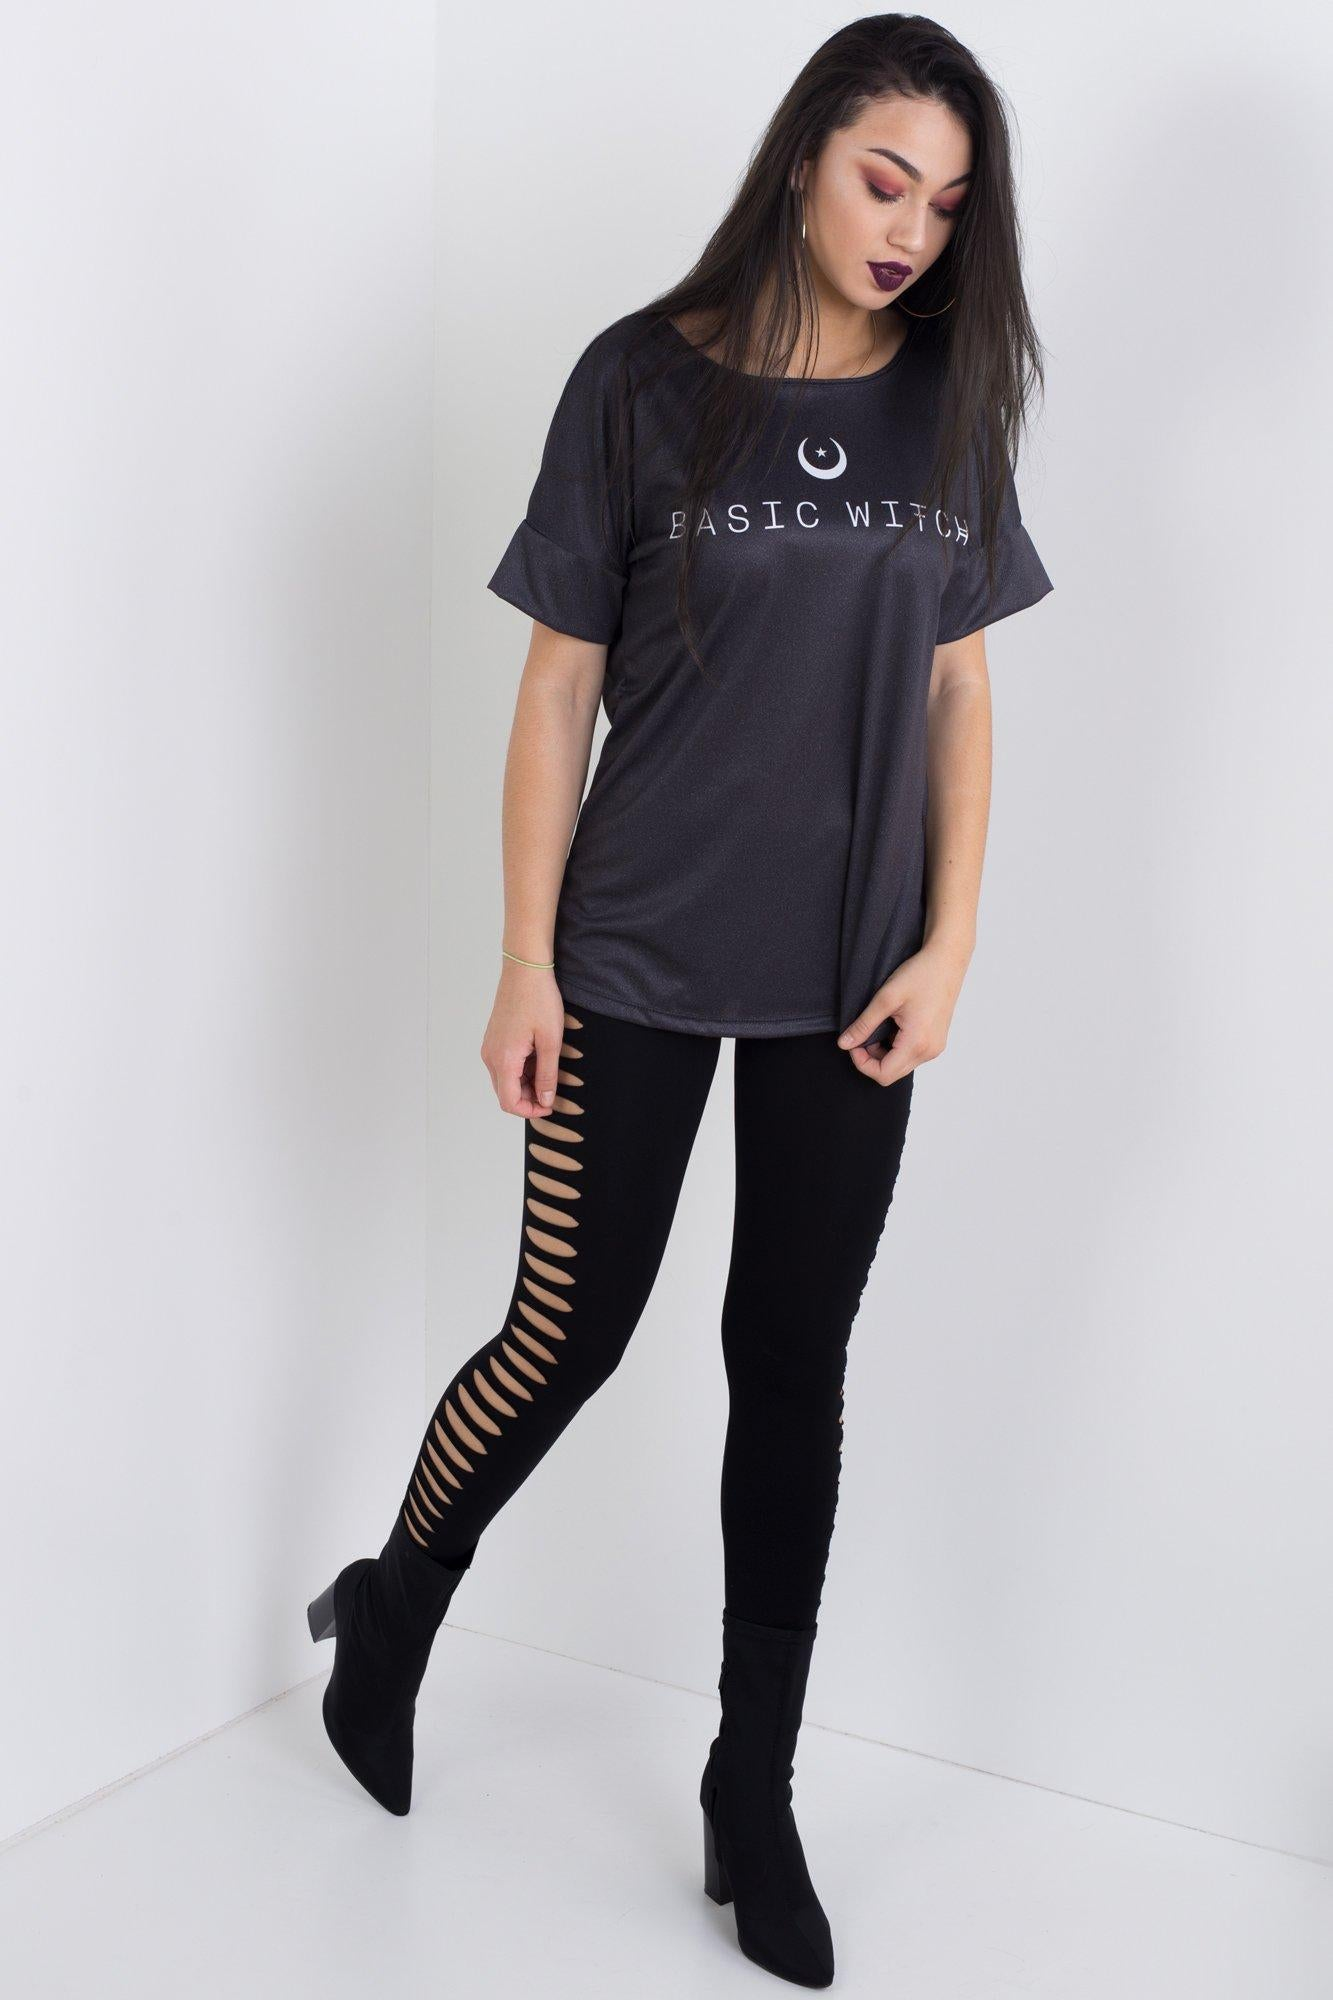 89396c901b Basic Witch Triple Threat Tee – Living Dead Clothing